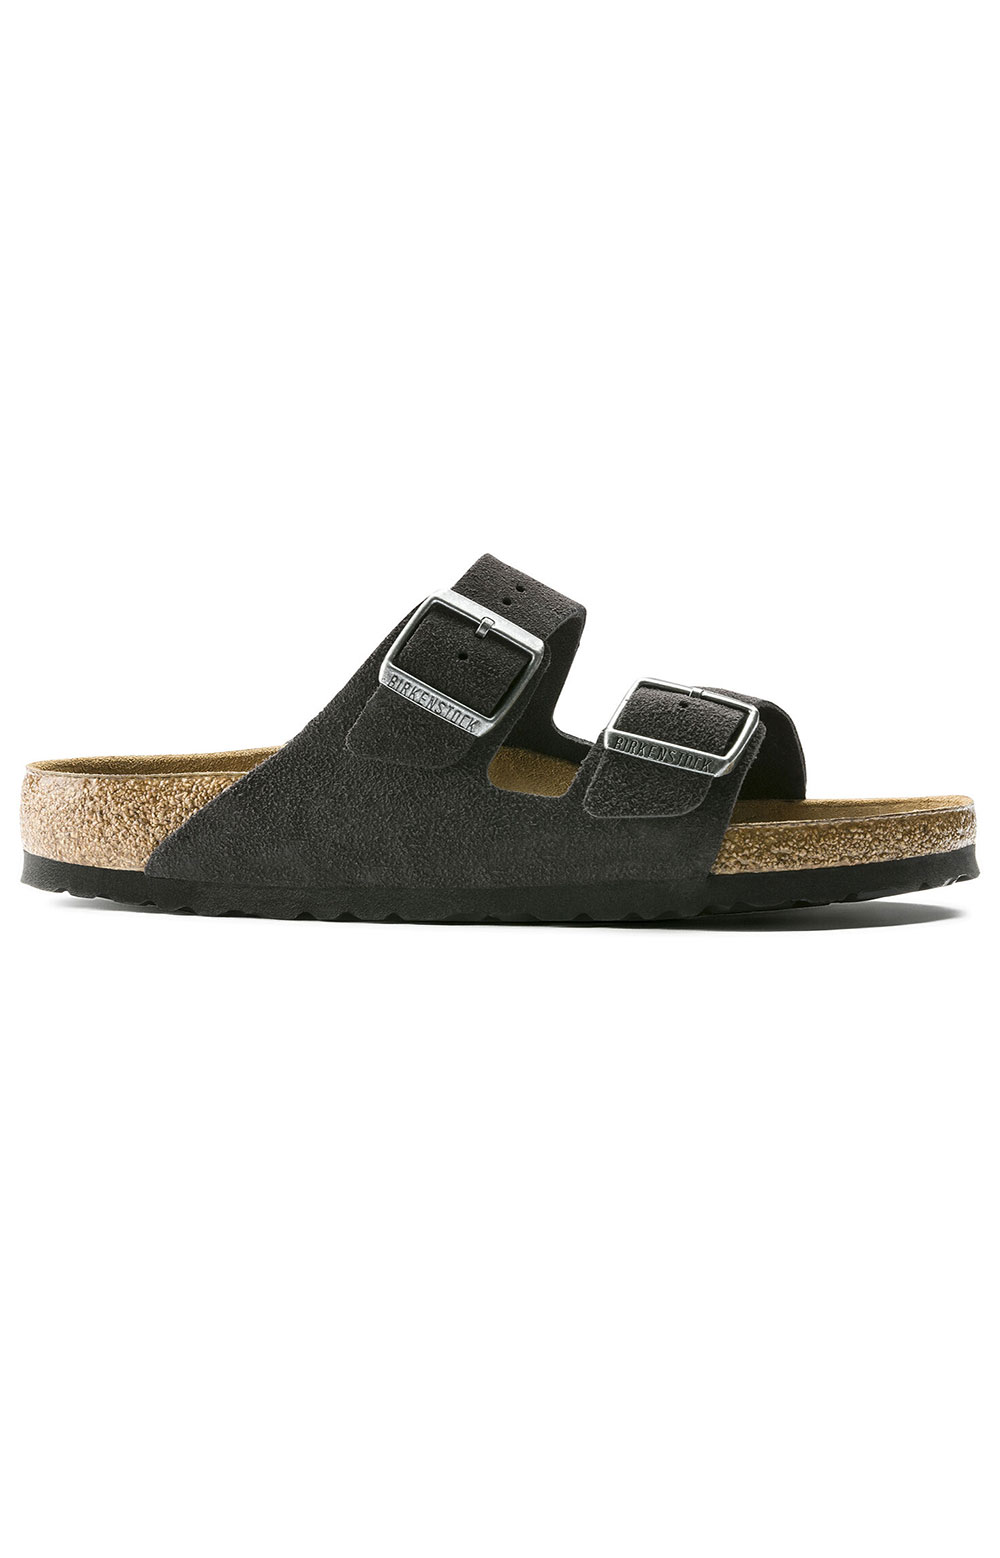 (0552321) Arizona Sandals - Velvet Grey  4